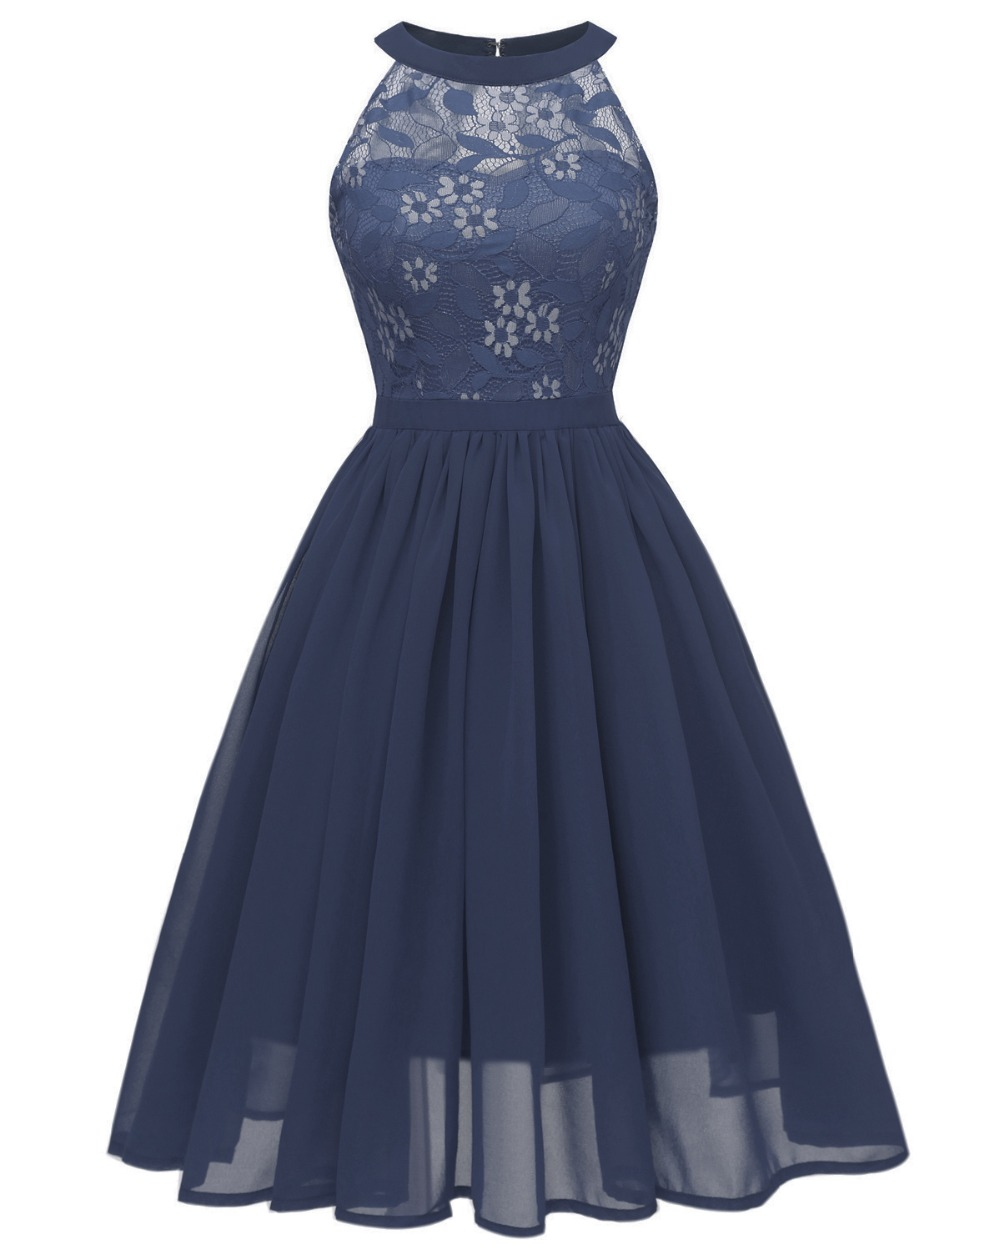 Formal Party Dress 8